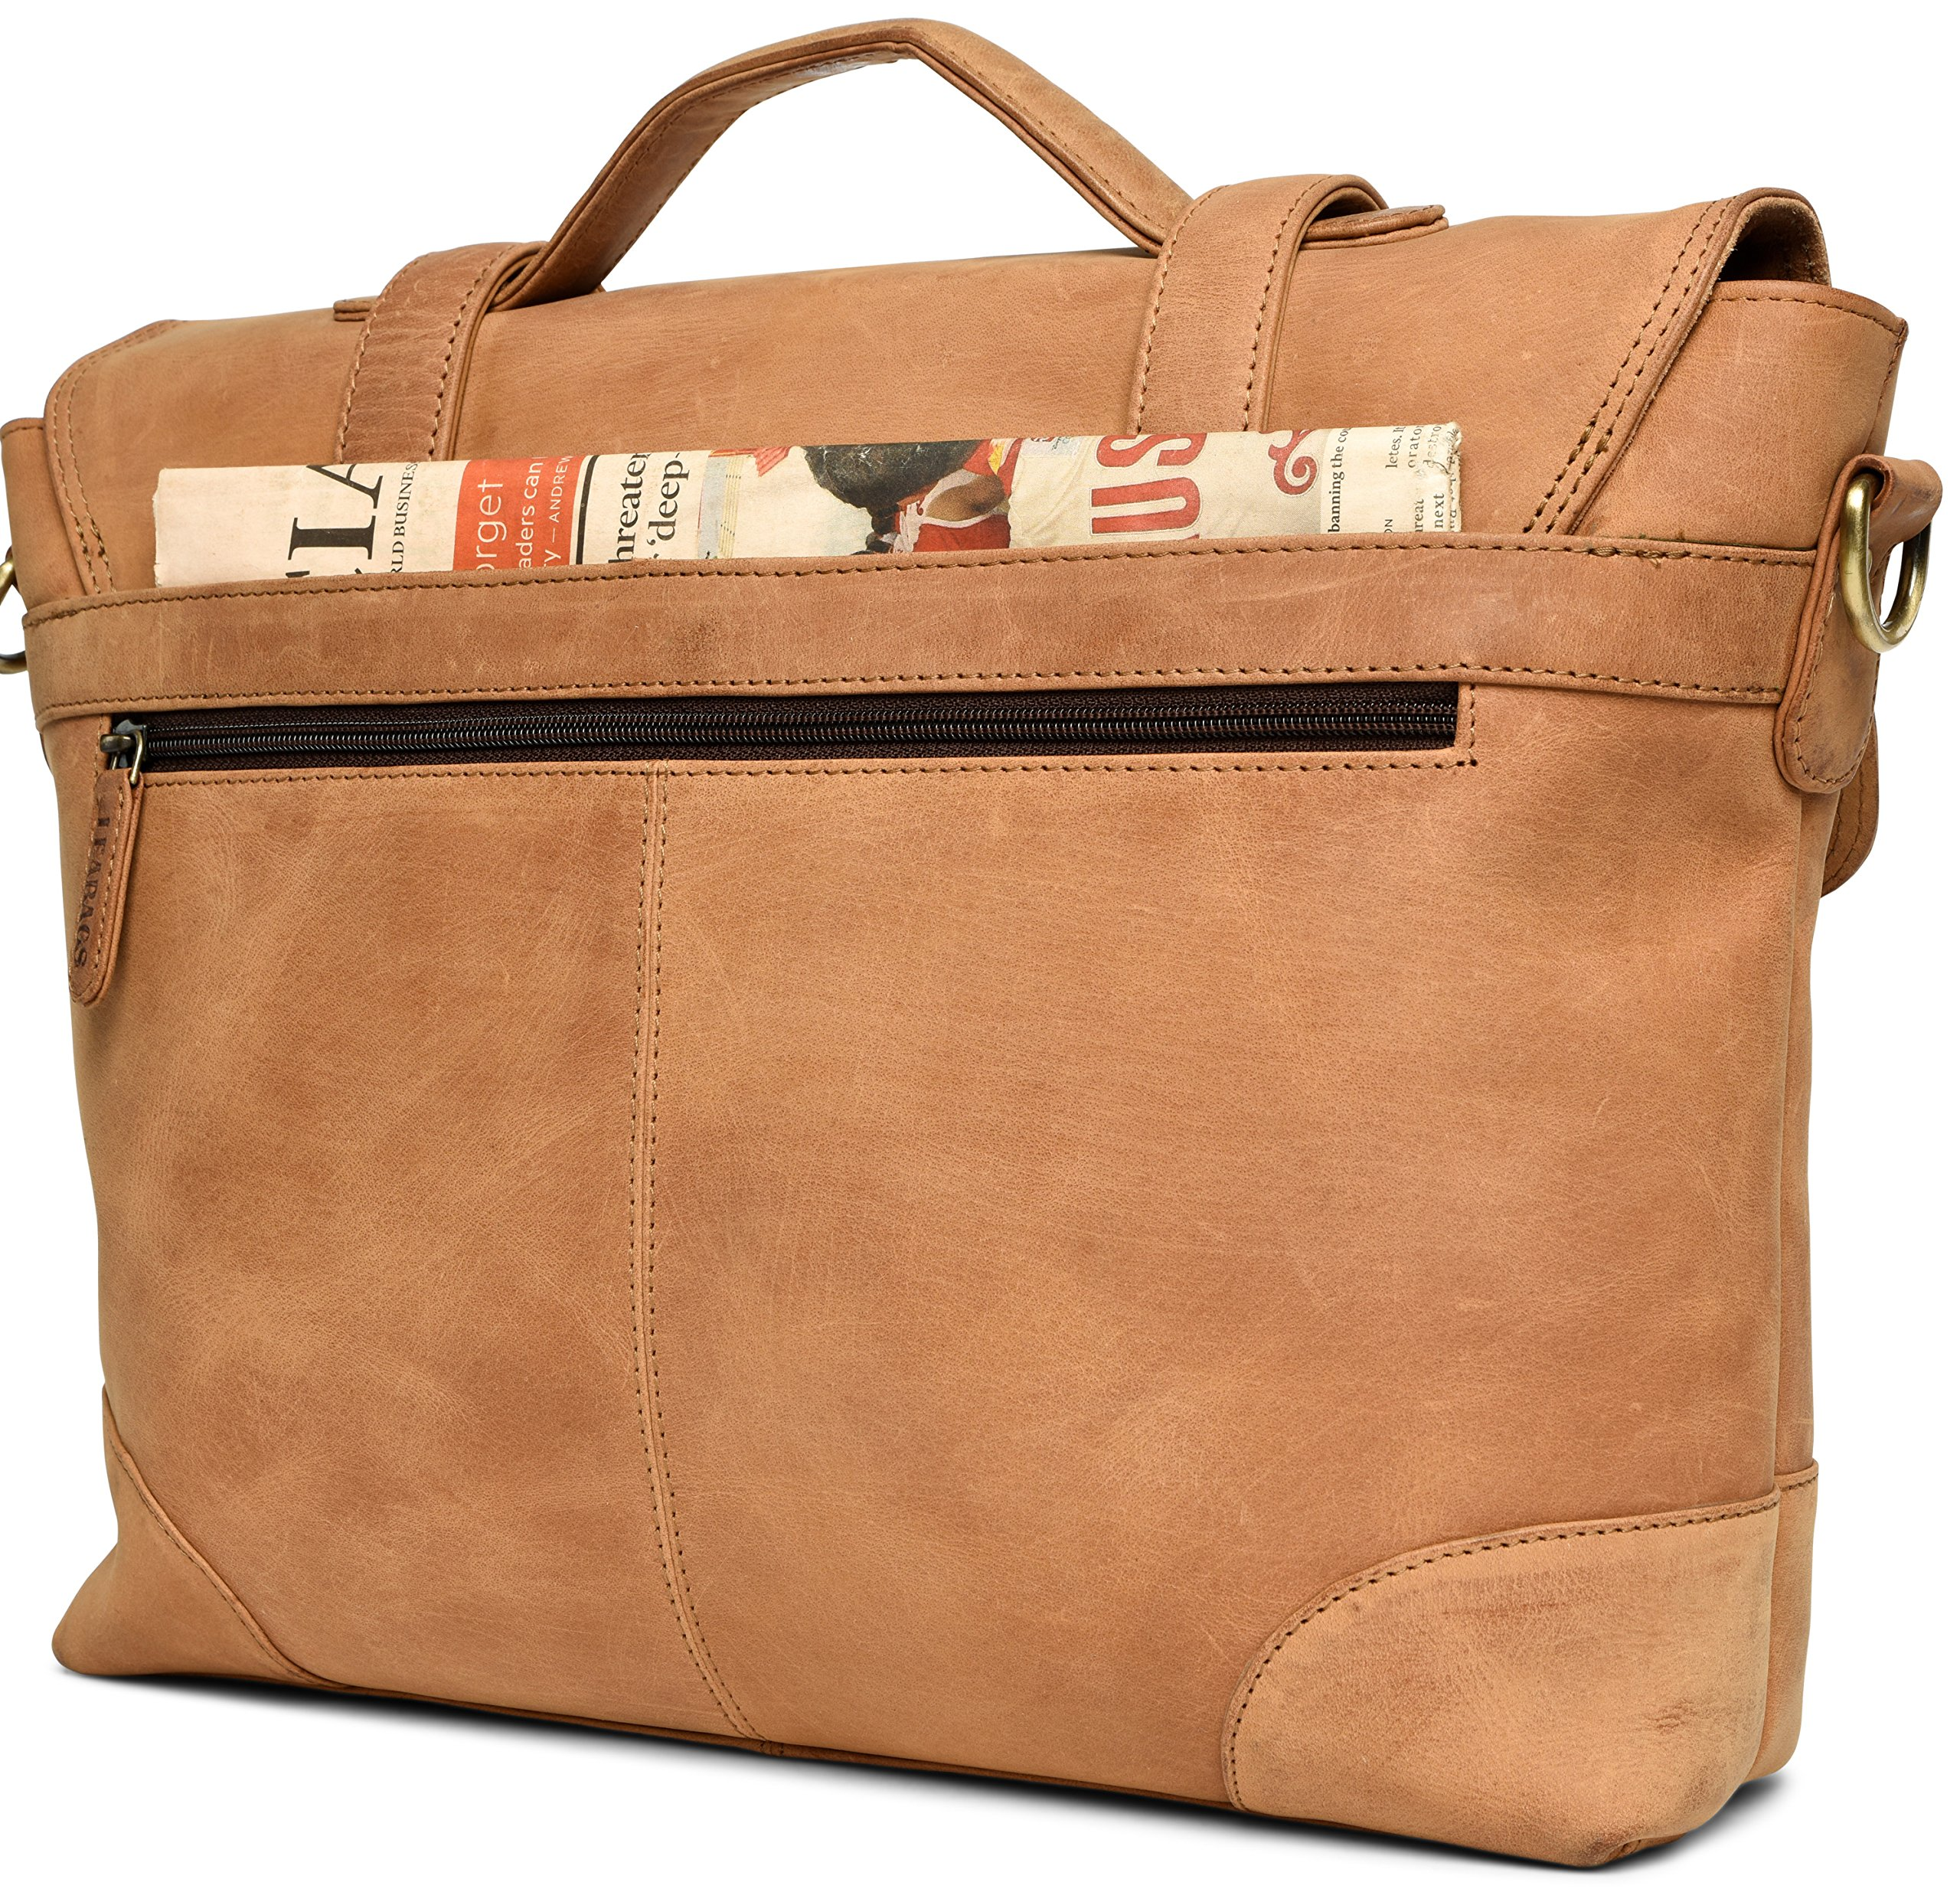 LEABAGS Liverpool genuine buffalo leather briefcase in vintage style - Brown by LEABAGS (Image #4)